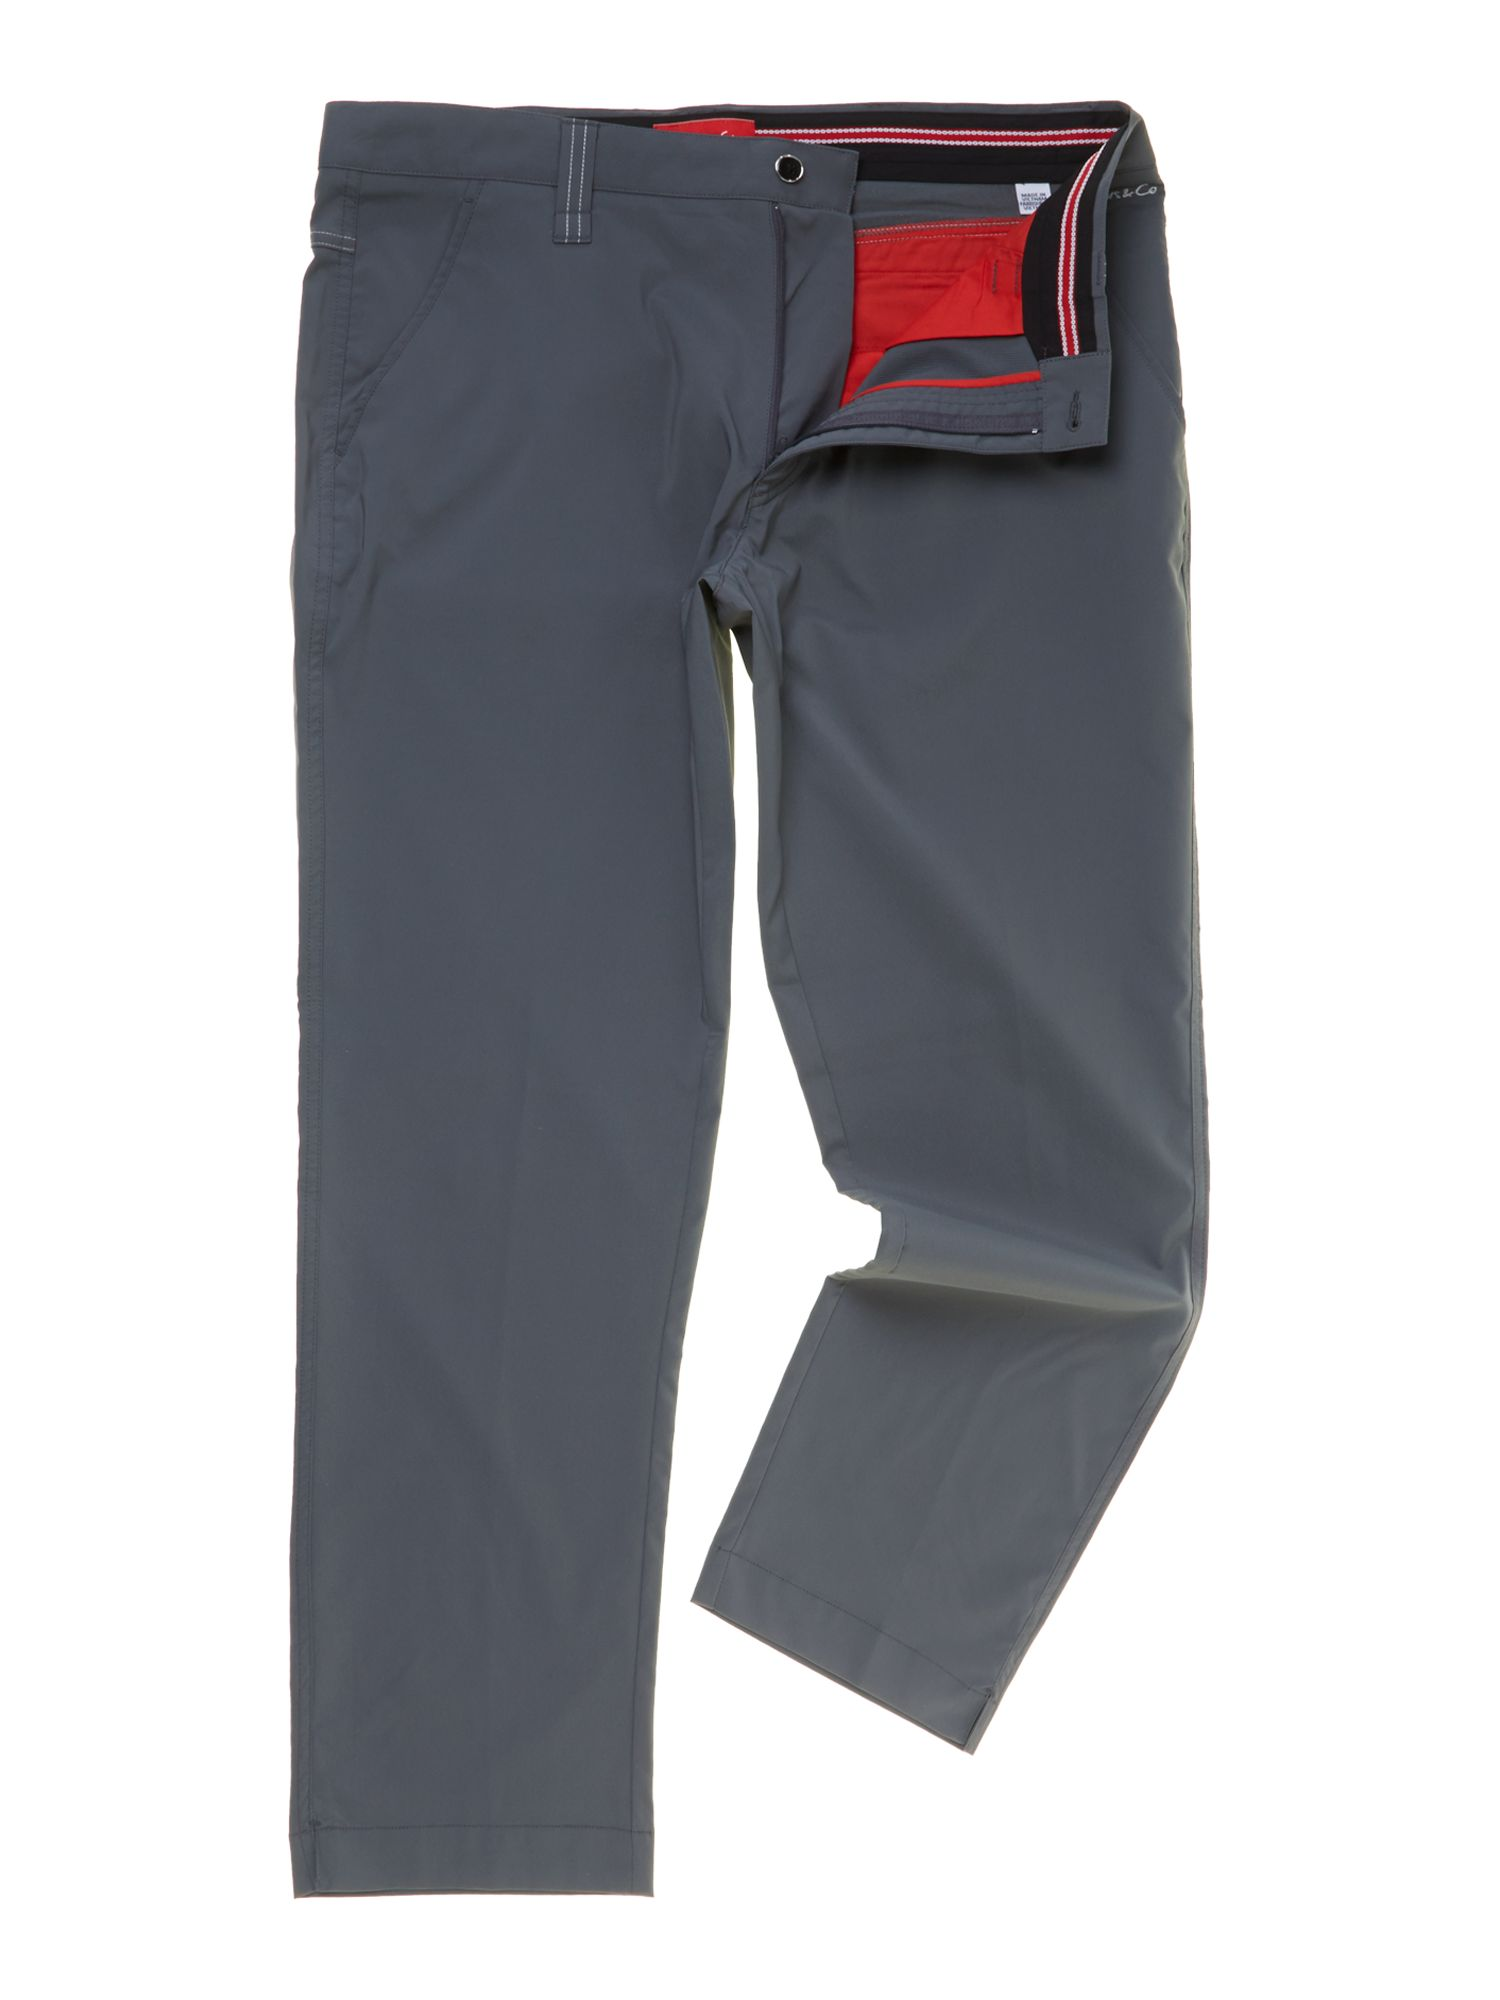 Dwyers and Co Men's Dwyers and Co Micro tech 2.0 trouser, Steel